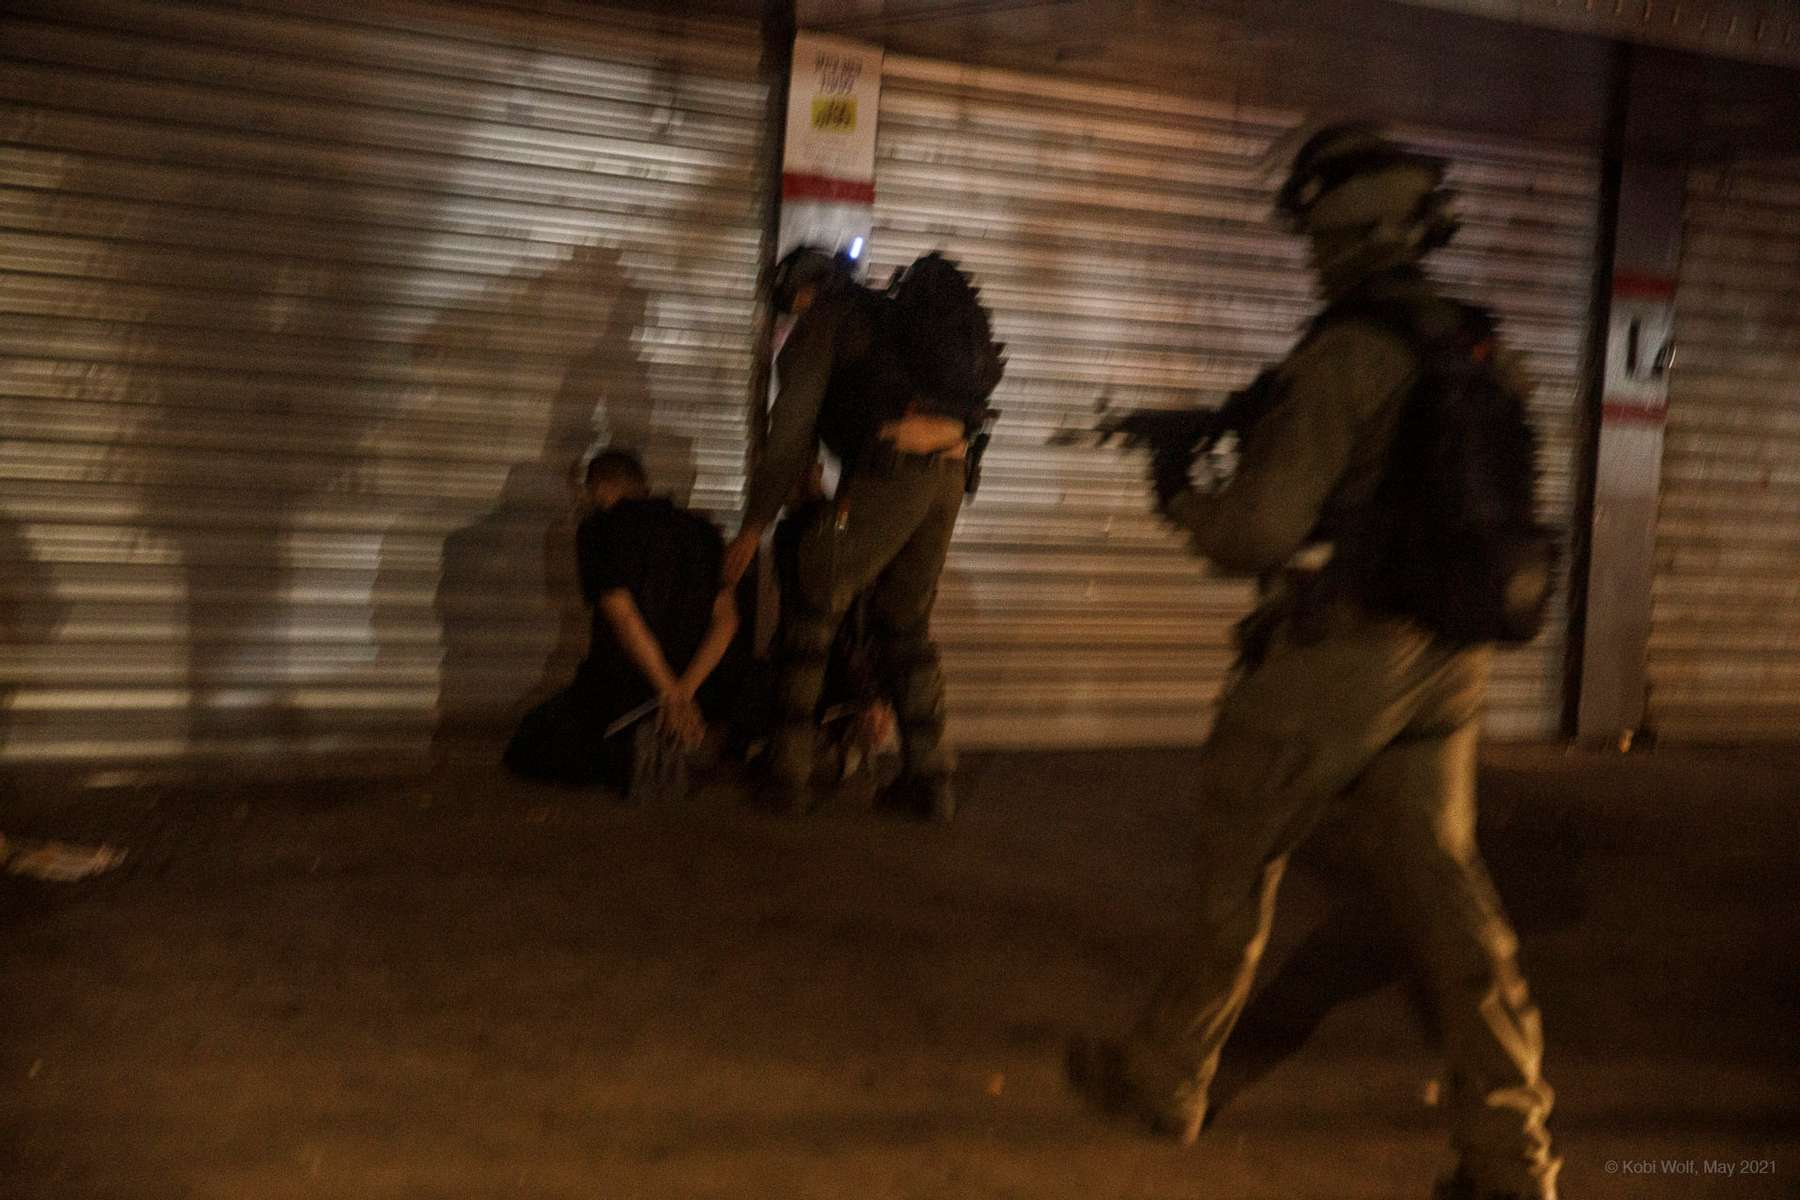 Israel police forces arrest Israel Arab from Lod during a riot in the Lod,central Israel, Thursday, May 13, 2021 photographer: Kobi Wolf